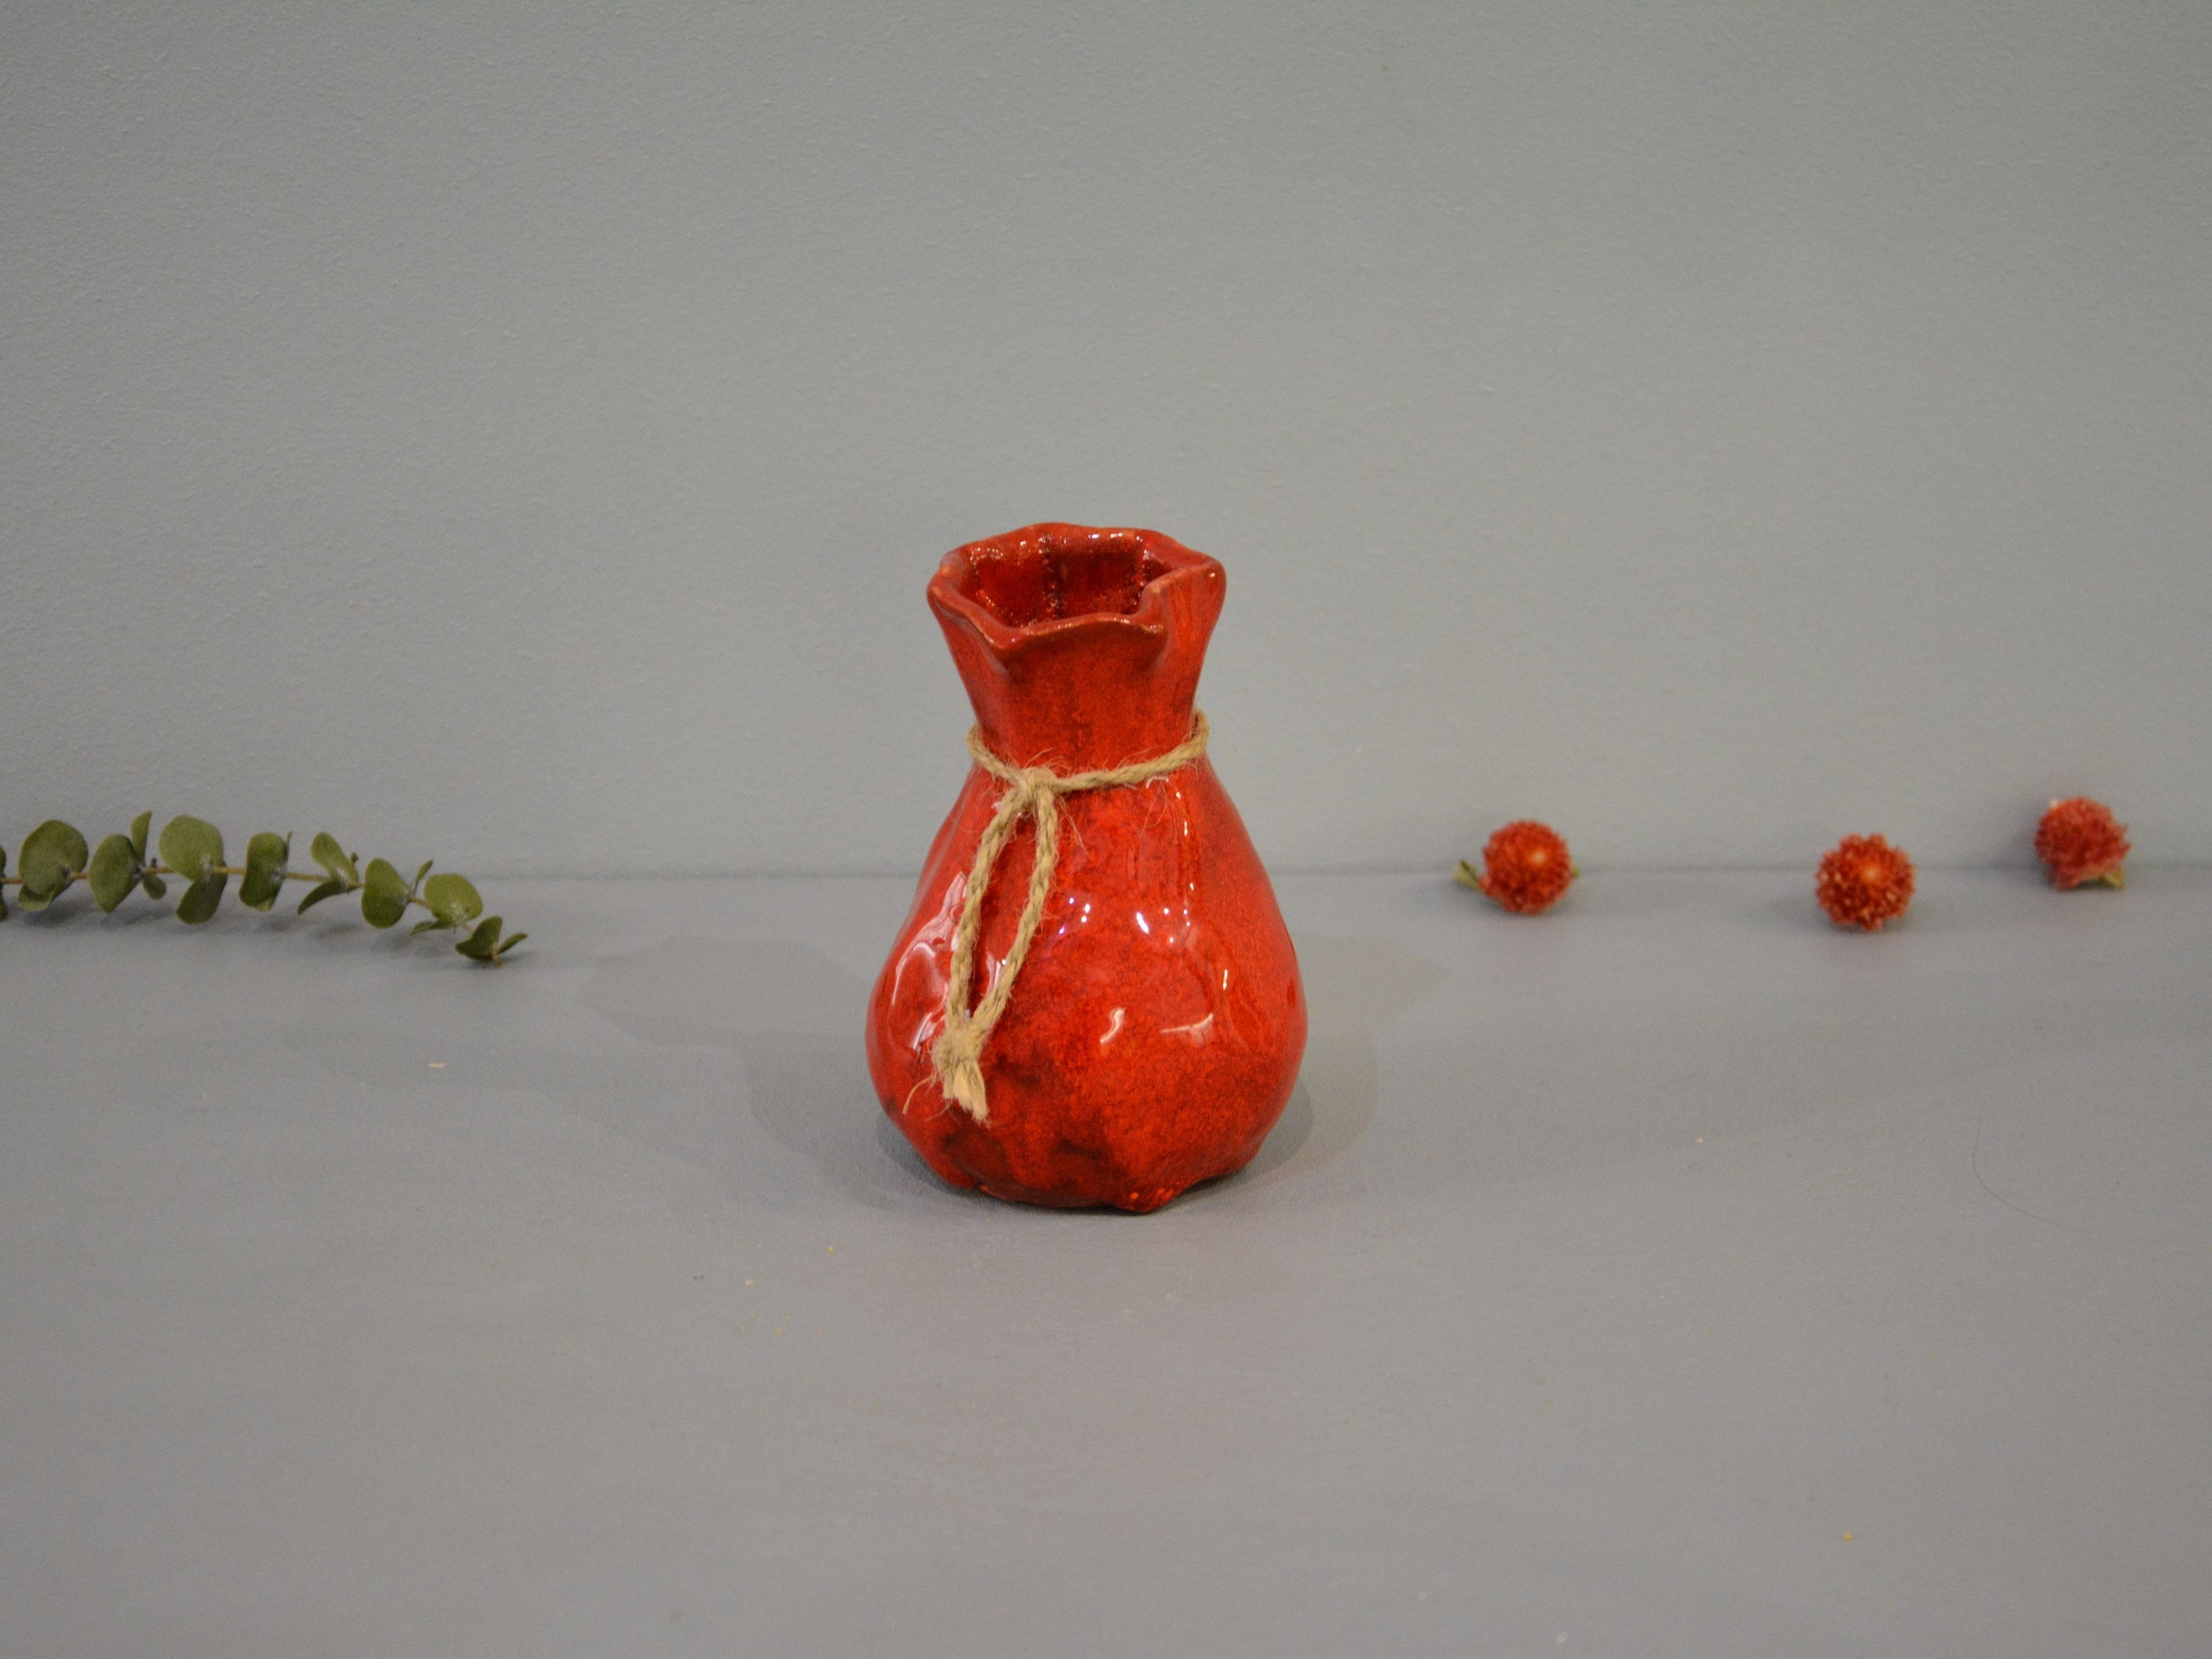 Candle vase «Red Bagful», height - 12 cm, color - red. Photo 1436-3840-2880.